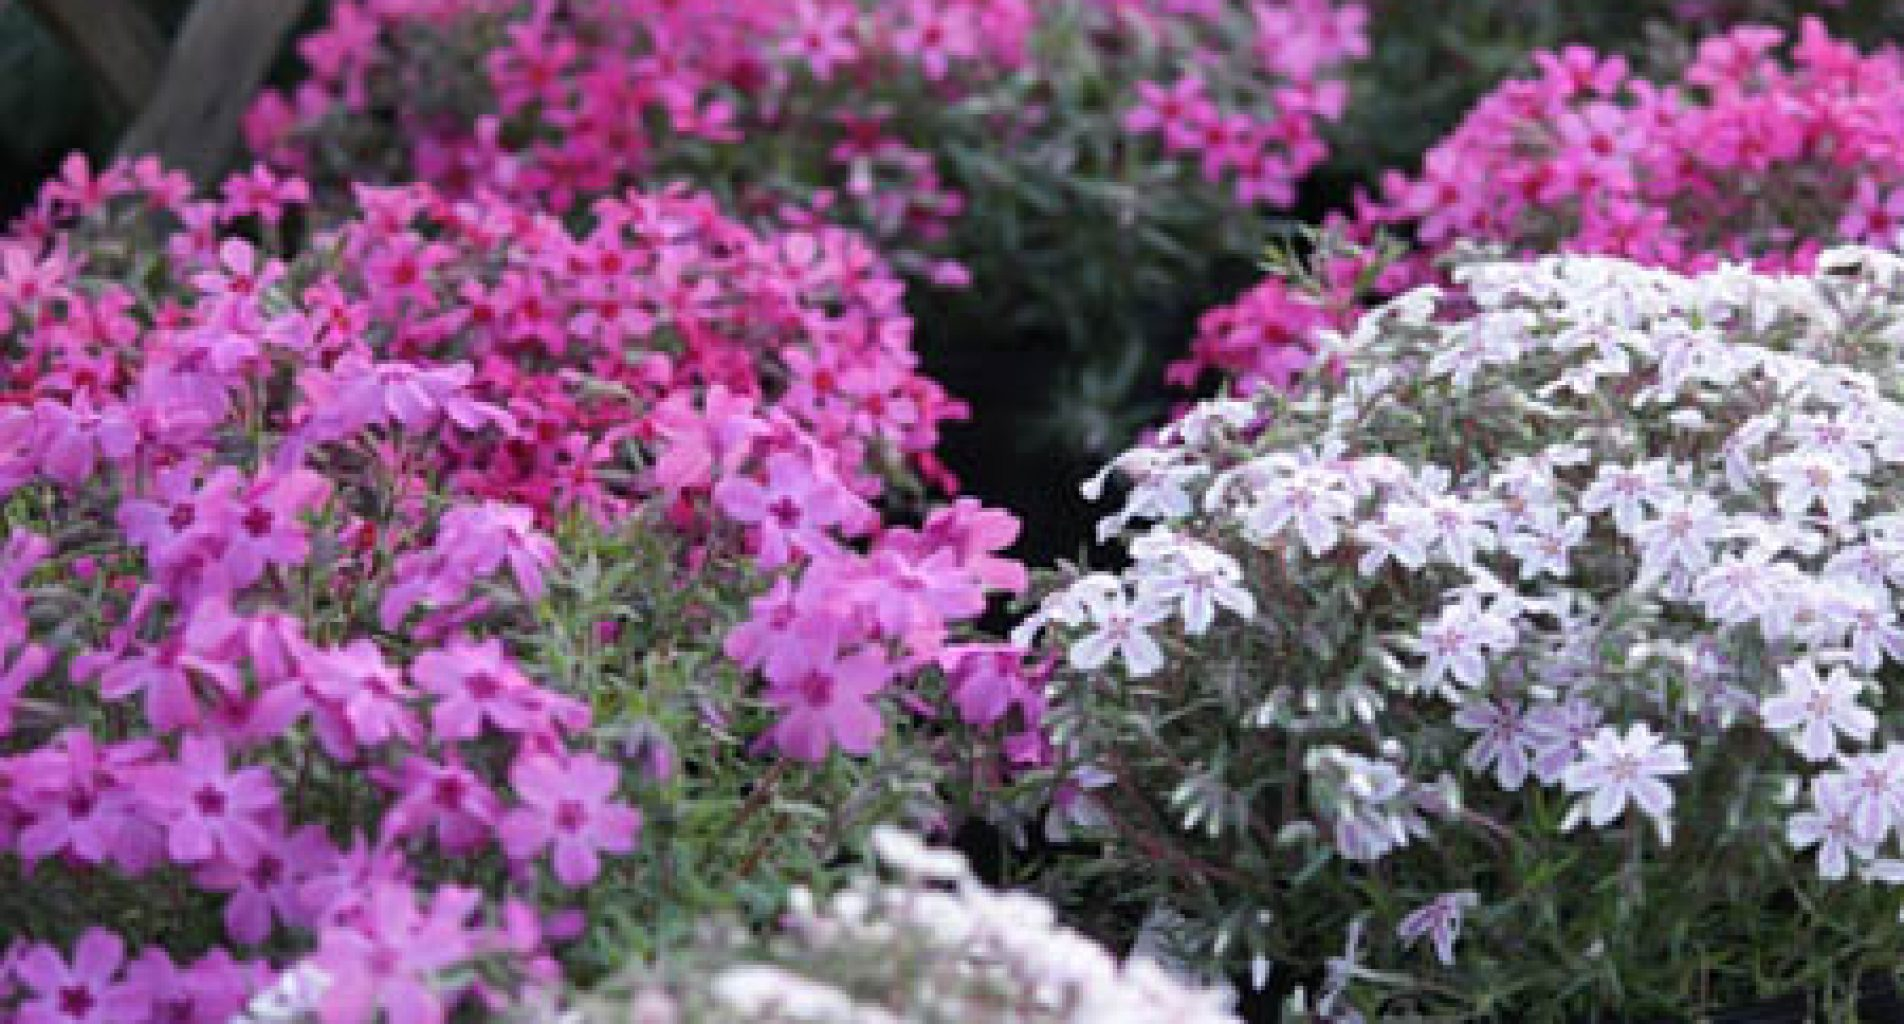 Phlox at Homestead Garden Center, WIilliamsburg